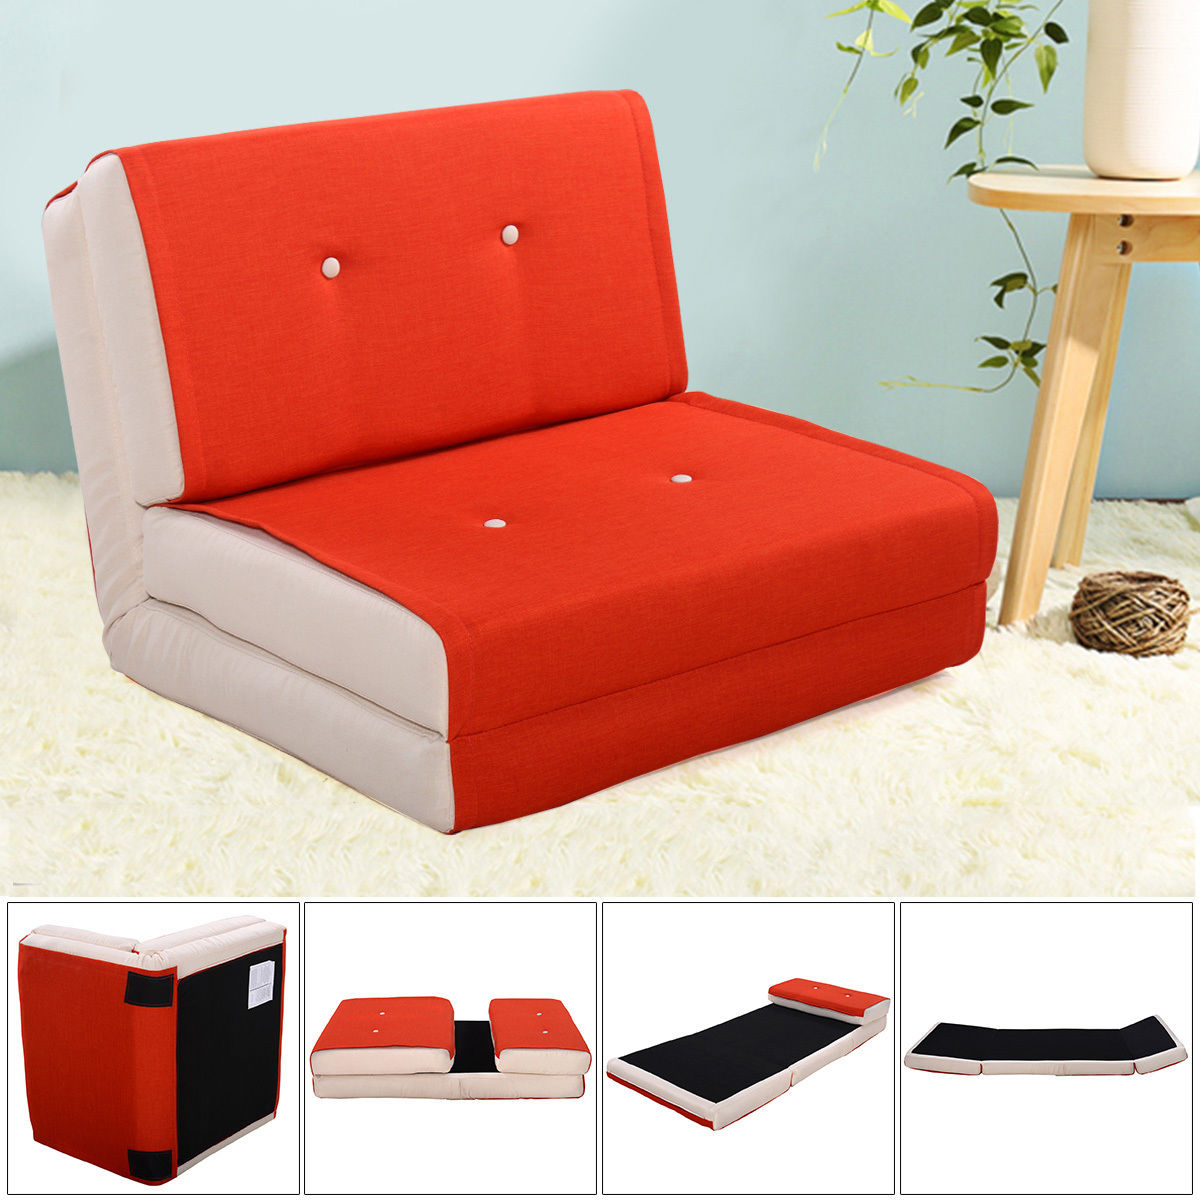 Futon sofa Cama E9dx Giantex Folding sofa Bed Modern Convertible Split Back Linen Futon